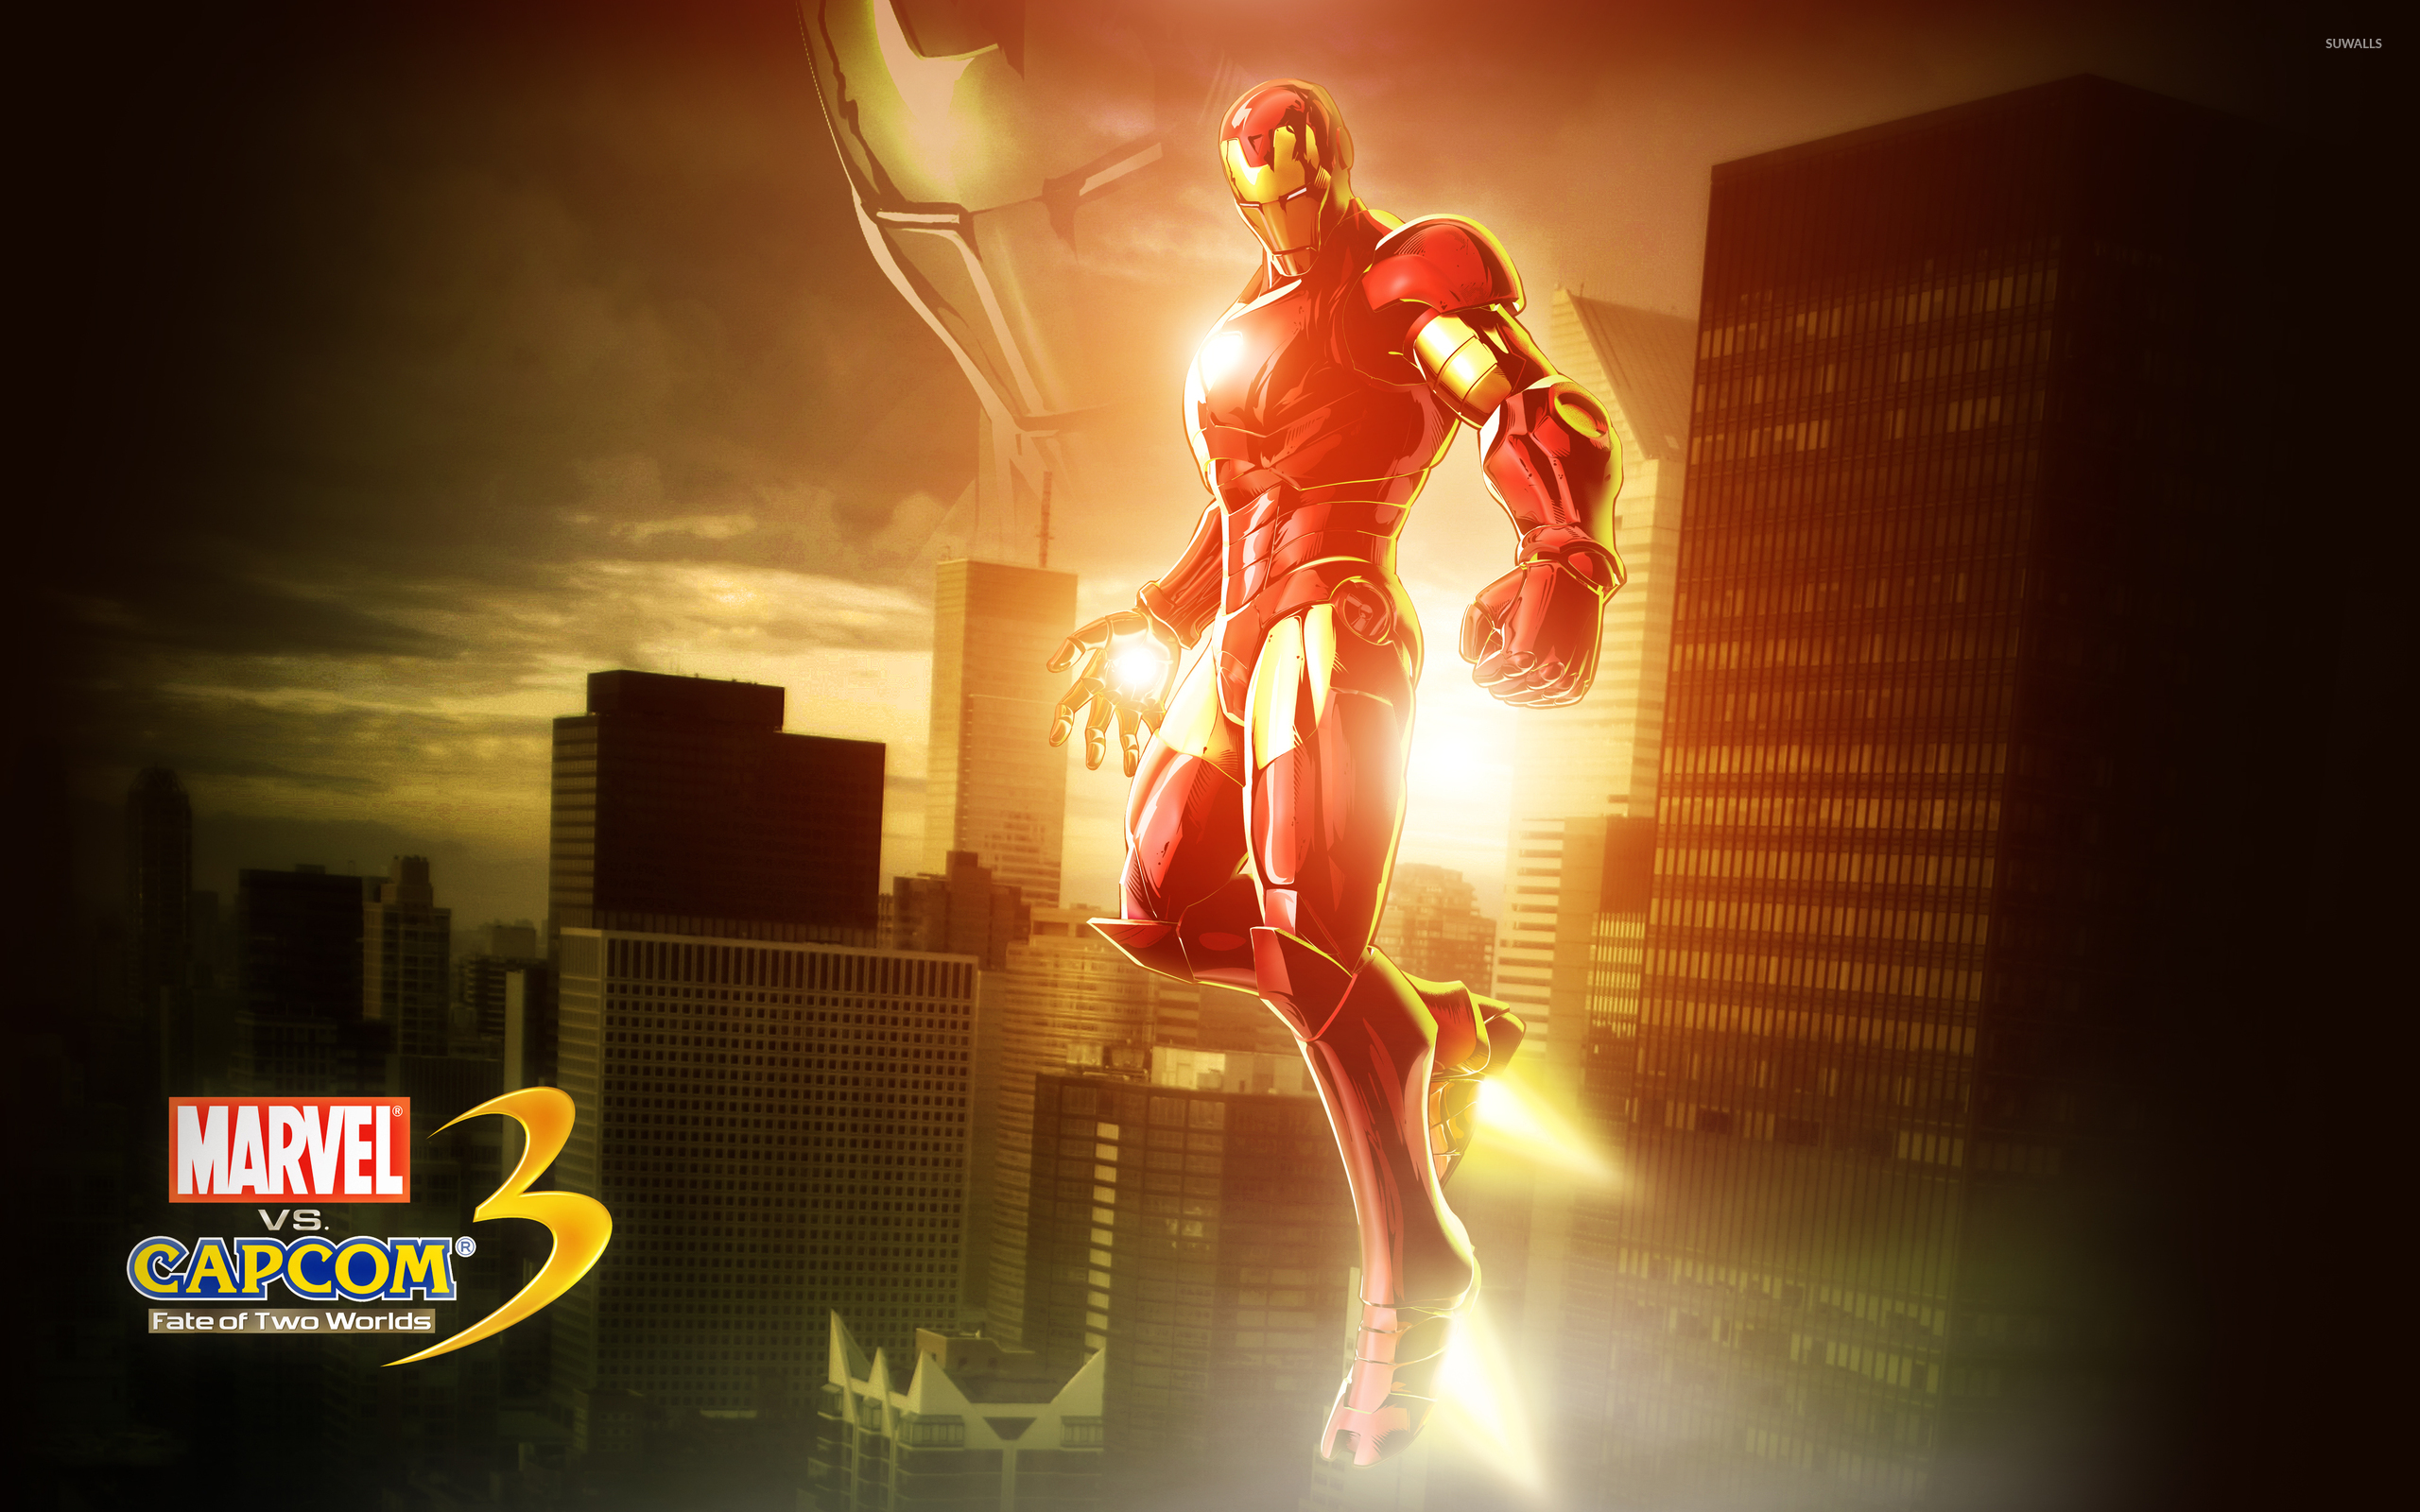 Marvel Vs Capcom 3 Iron Man Wallpaper